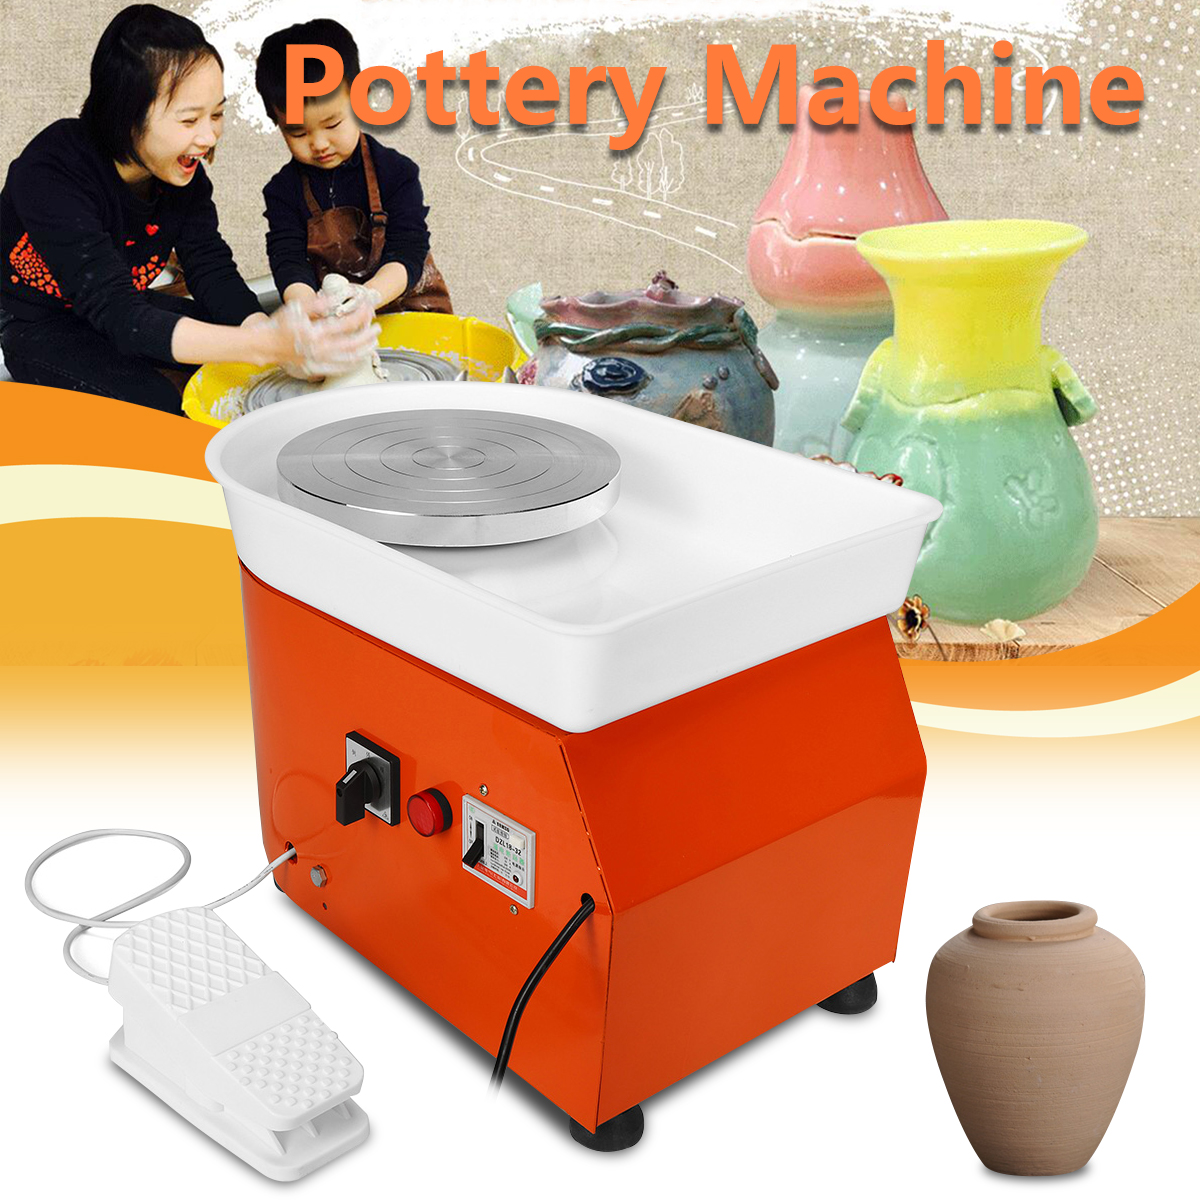 250W 0-300r/Min Inorganic Speed Electric Pottery Wheel Machine With Mobile Foot Pedal Ceramic DIY Tool Art Craft For Beginner Children Kids Toddlers Birthday Gifts Early Education